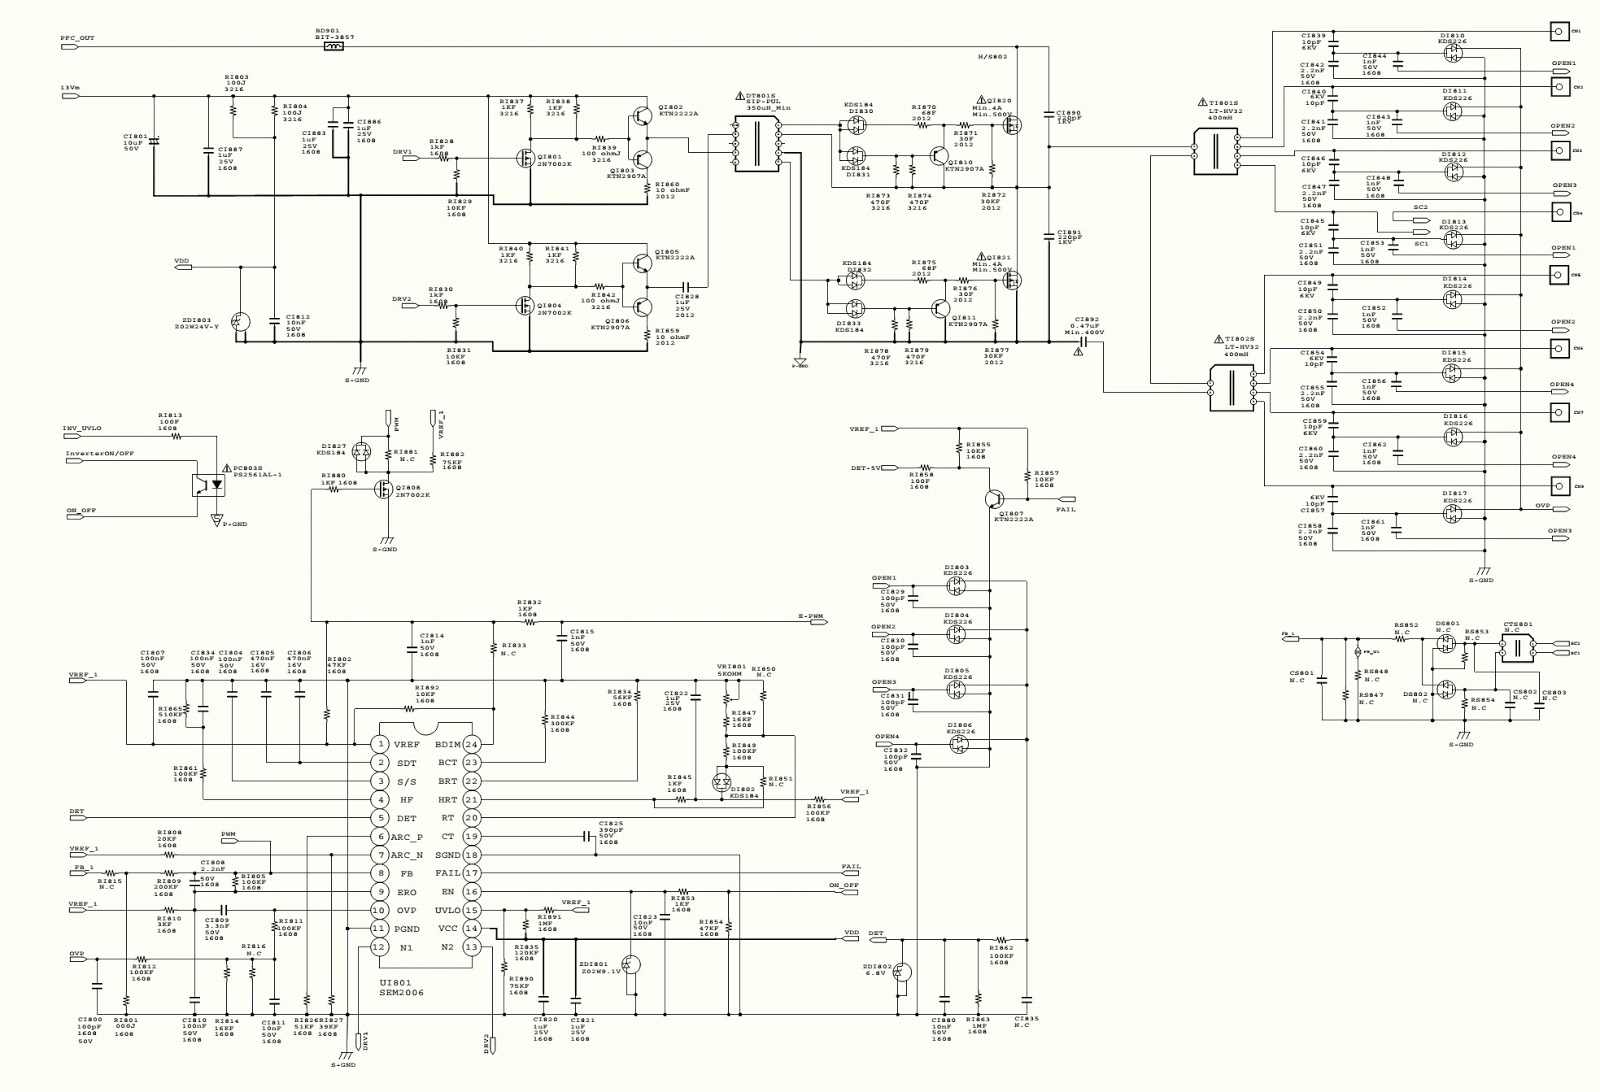 lg 47le5400 lcd tv schematic diagram tv schematic diagrams on samsung lcd tv backlight inverter tv schematic